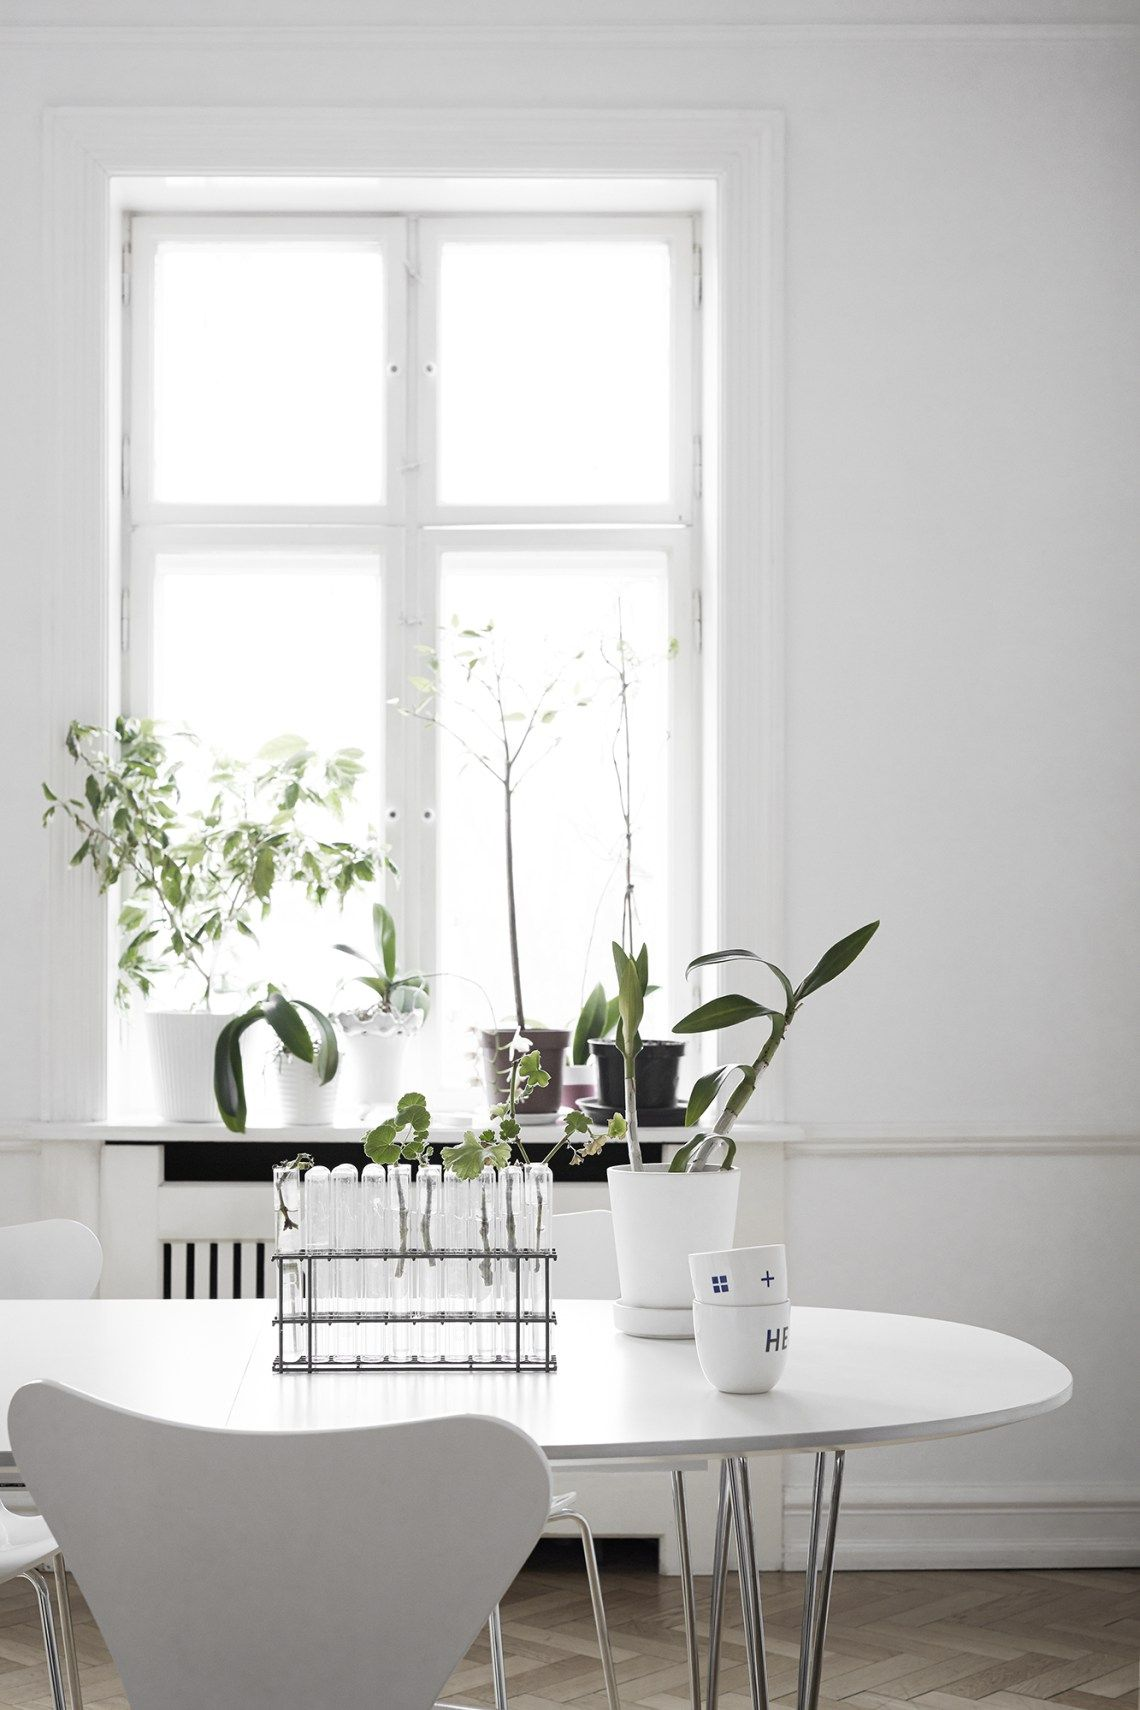 Greens inside of white window sill white rooms and window room dzzzfo